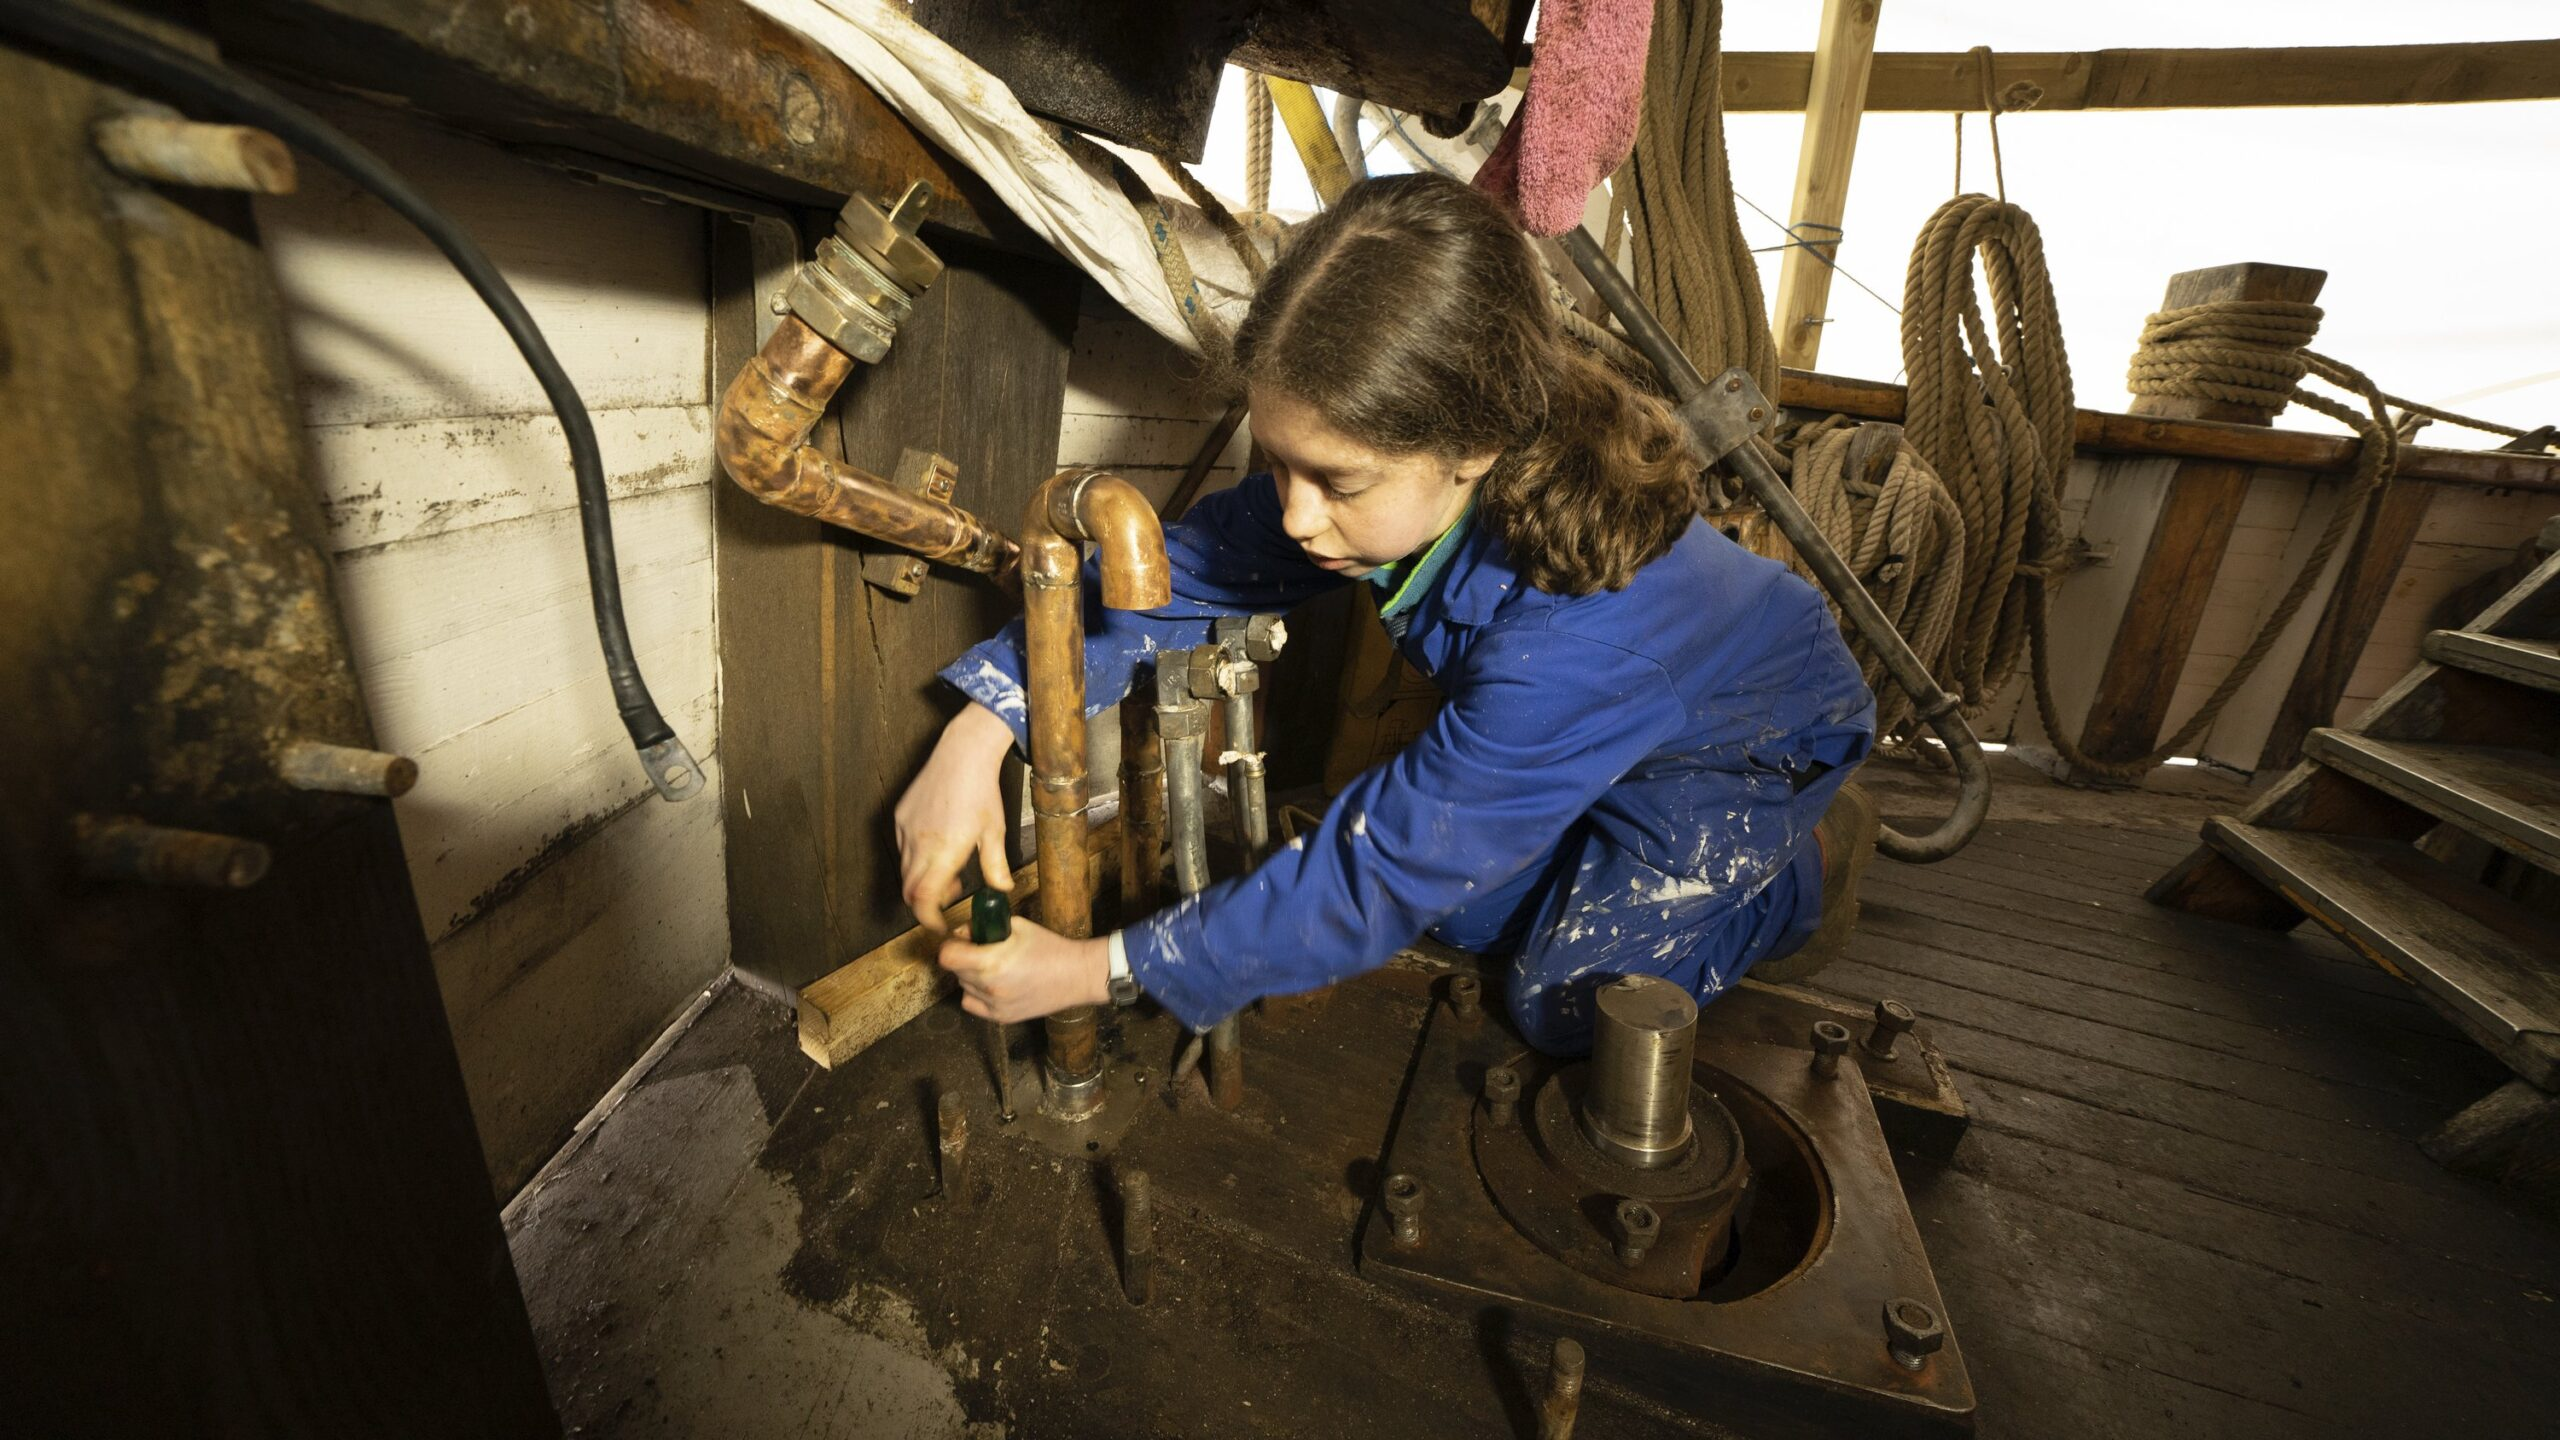 Girl with screwdriver and pipework